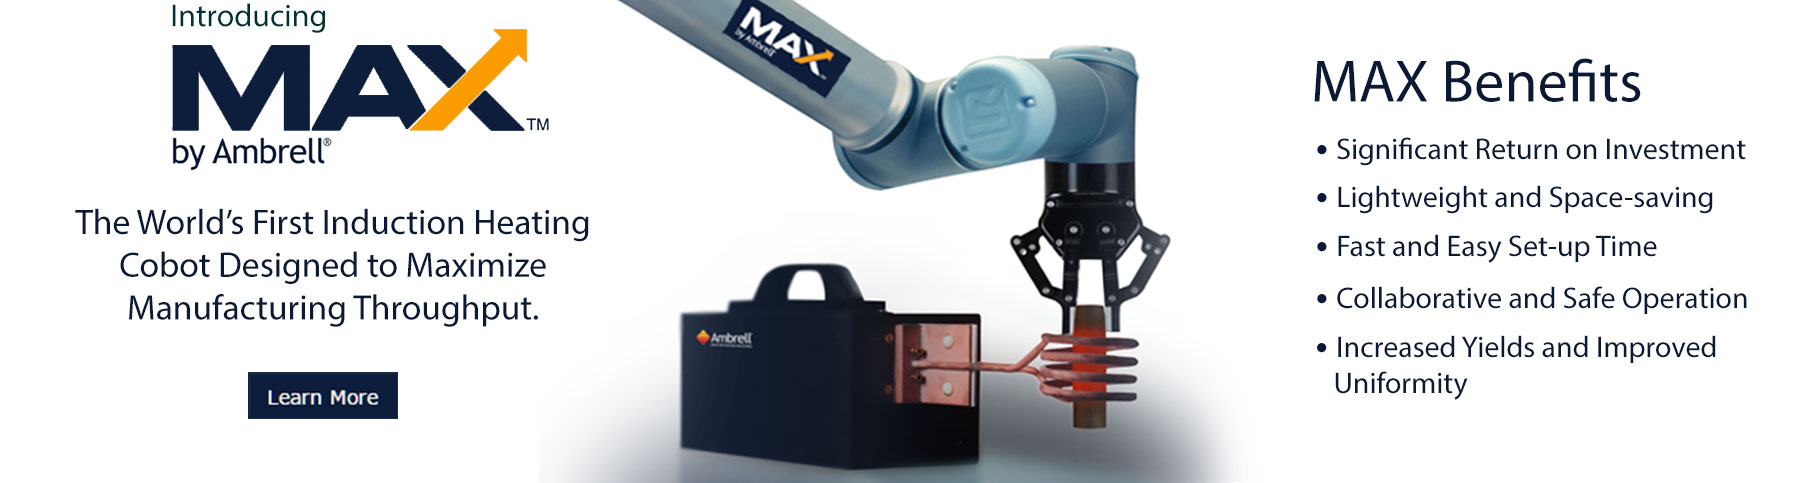 The World's First Induction Heating Cobot Designed to Maximize Manufacturing Throughput.